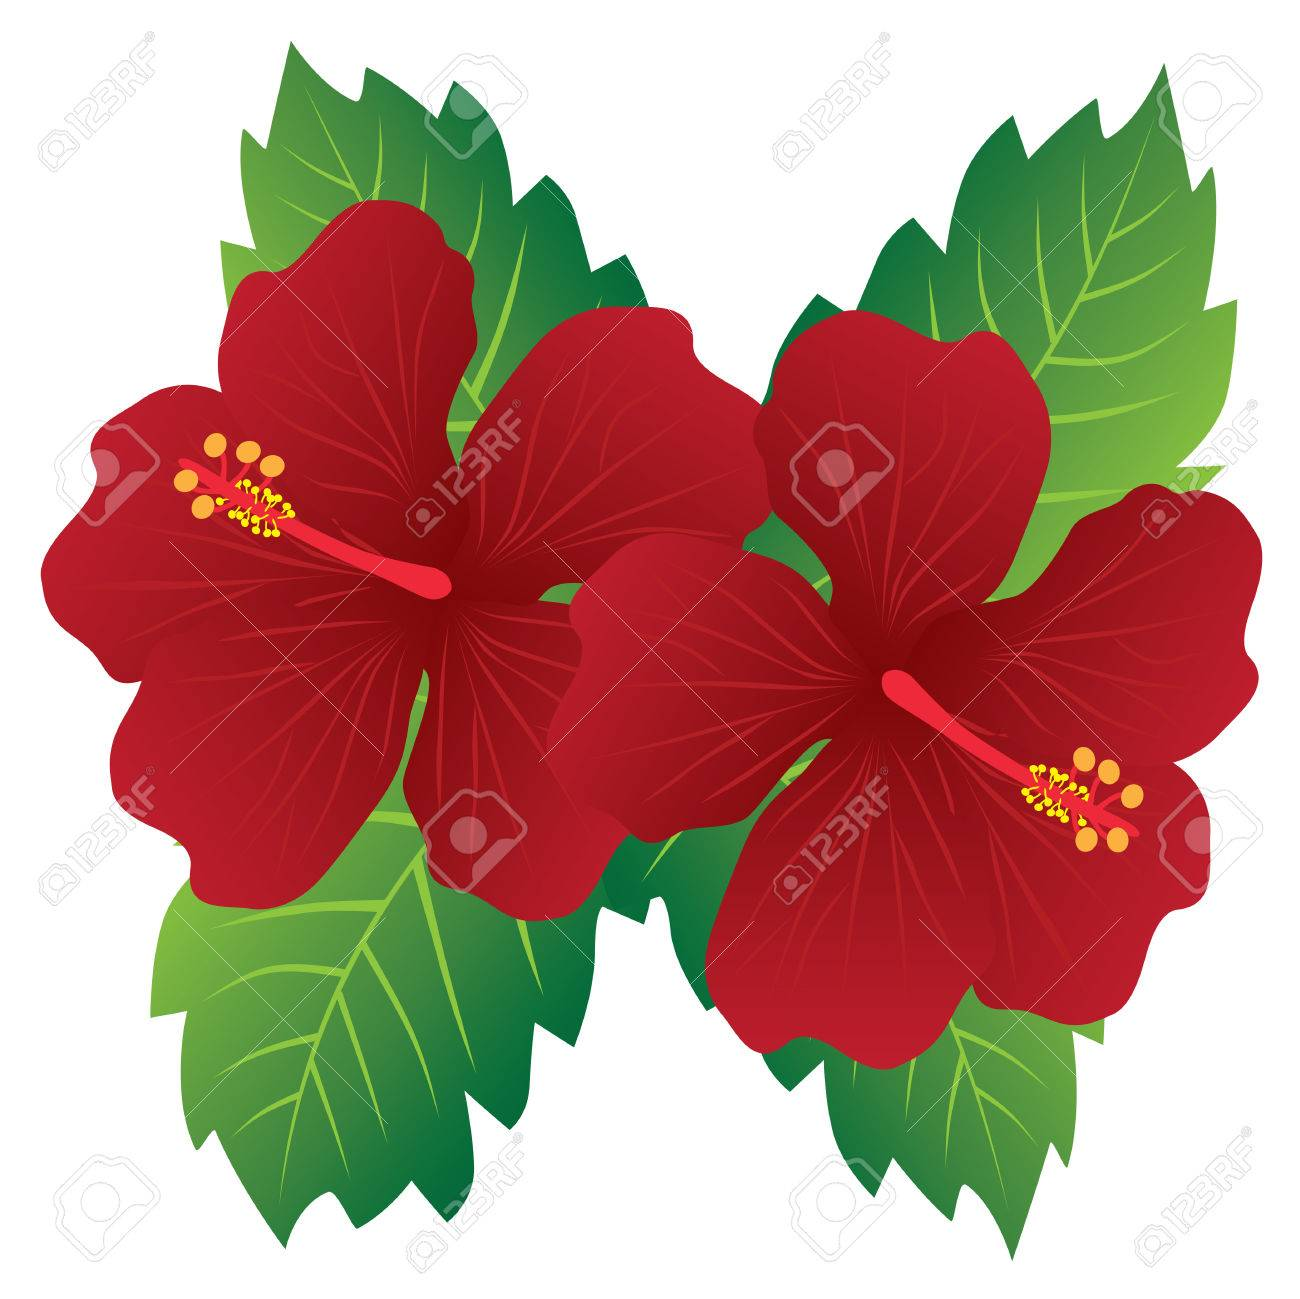 Hibiscus national flower choice image beautiful exotic flowers malaysia national flower red hibiscus flowers with leaves color izmirmasajfo